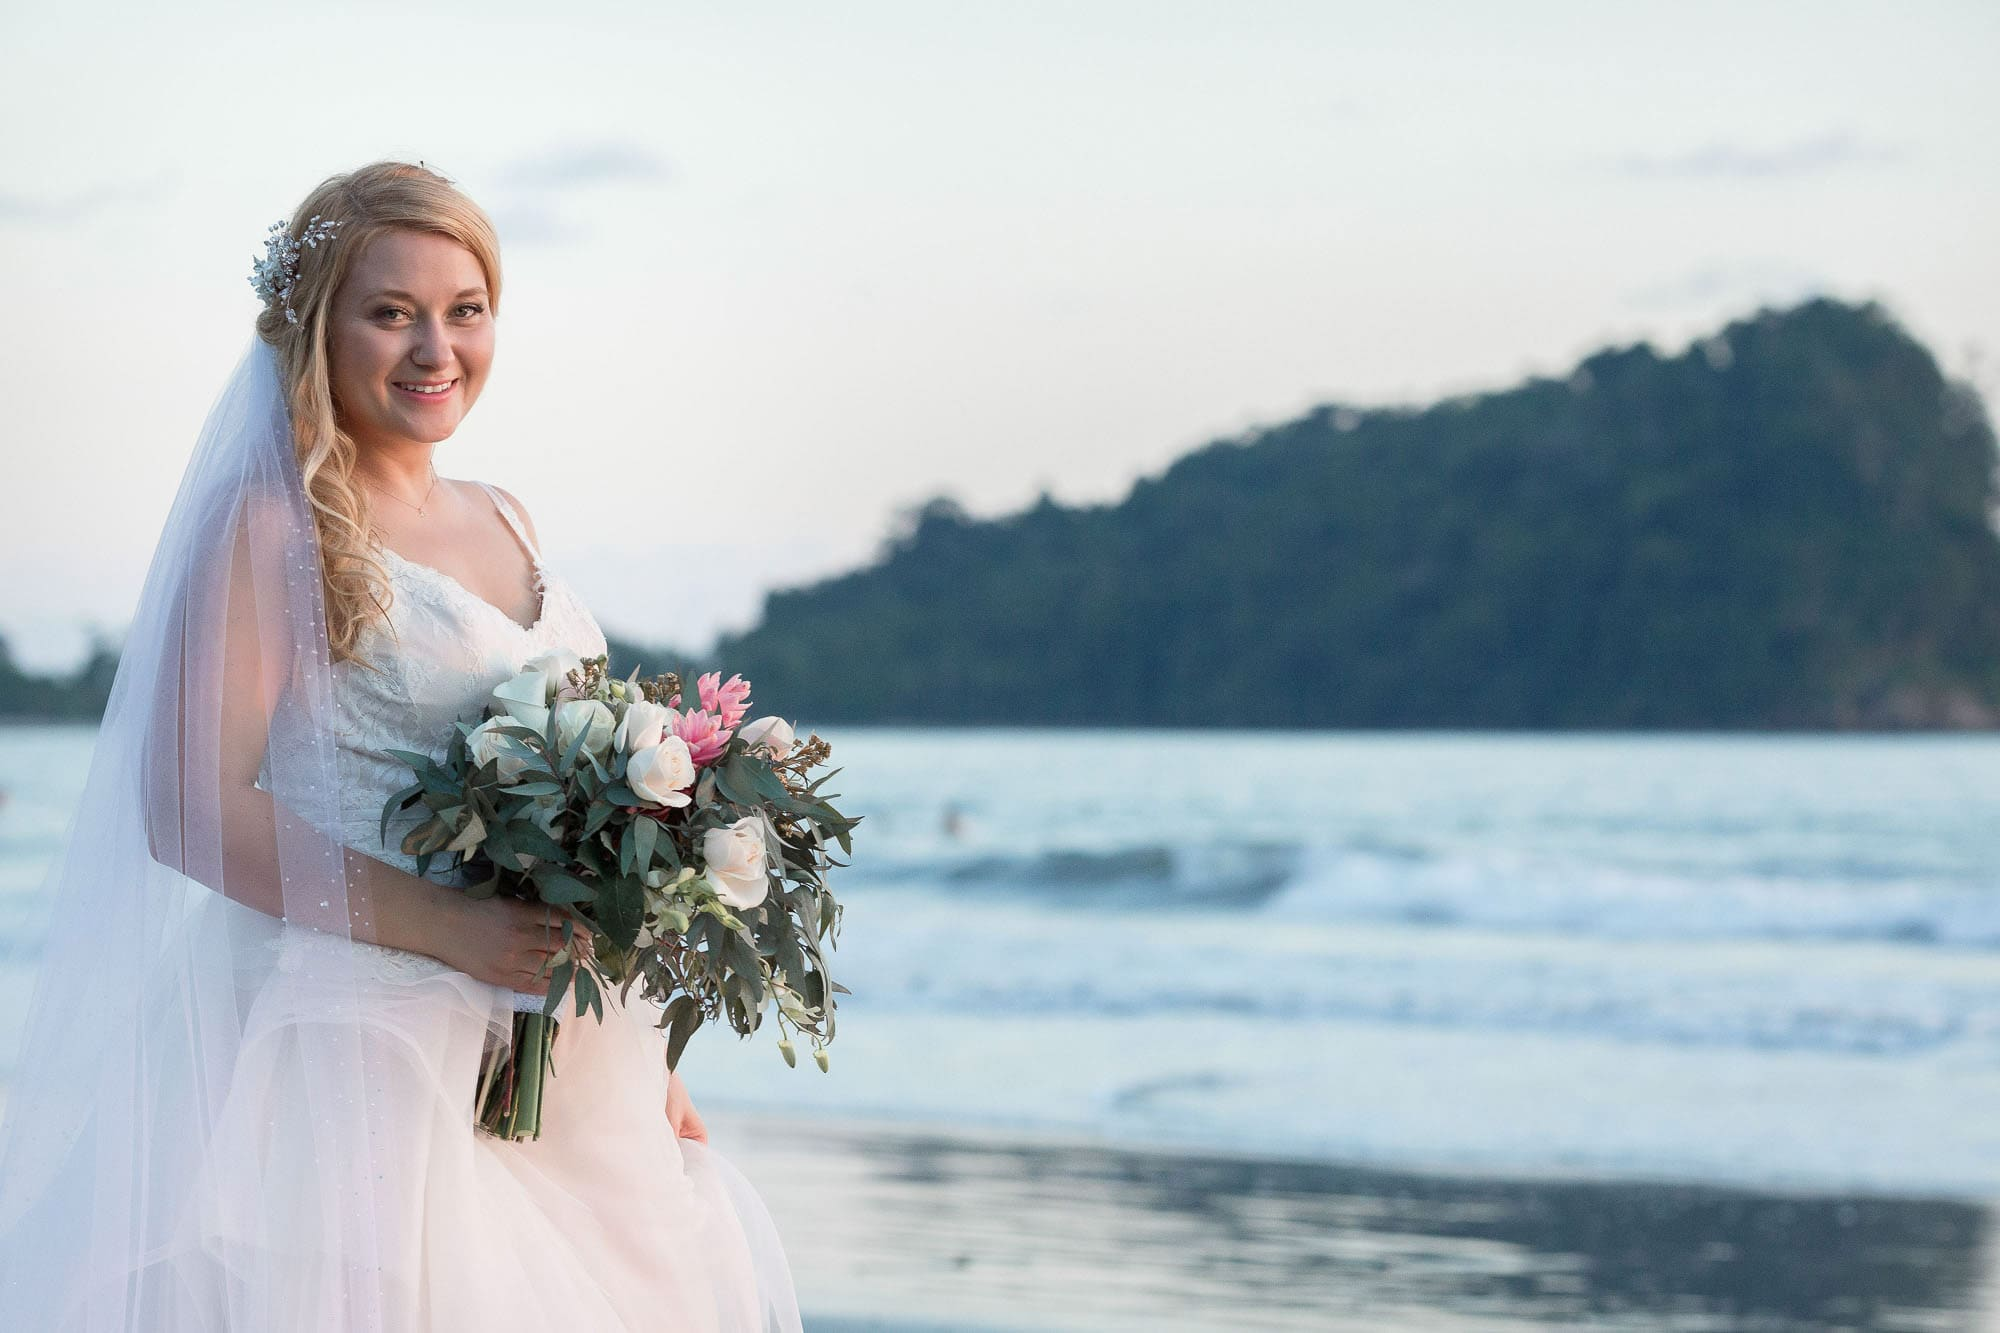 Traditional wedding portrait time! The bride on the beach